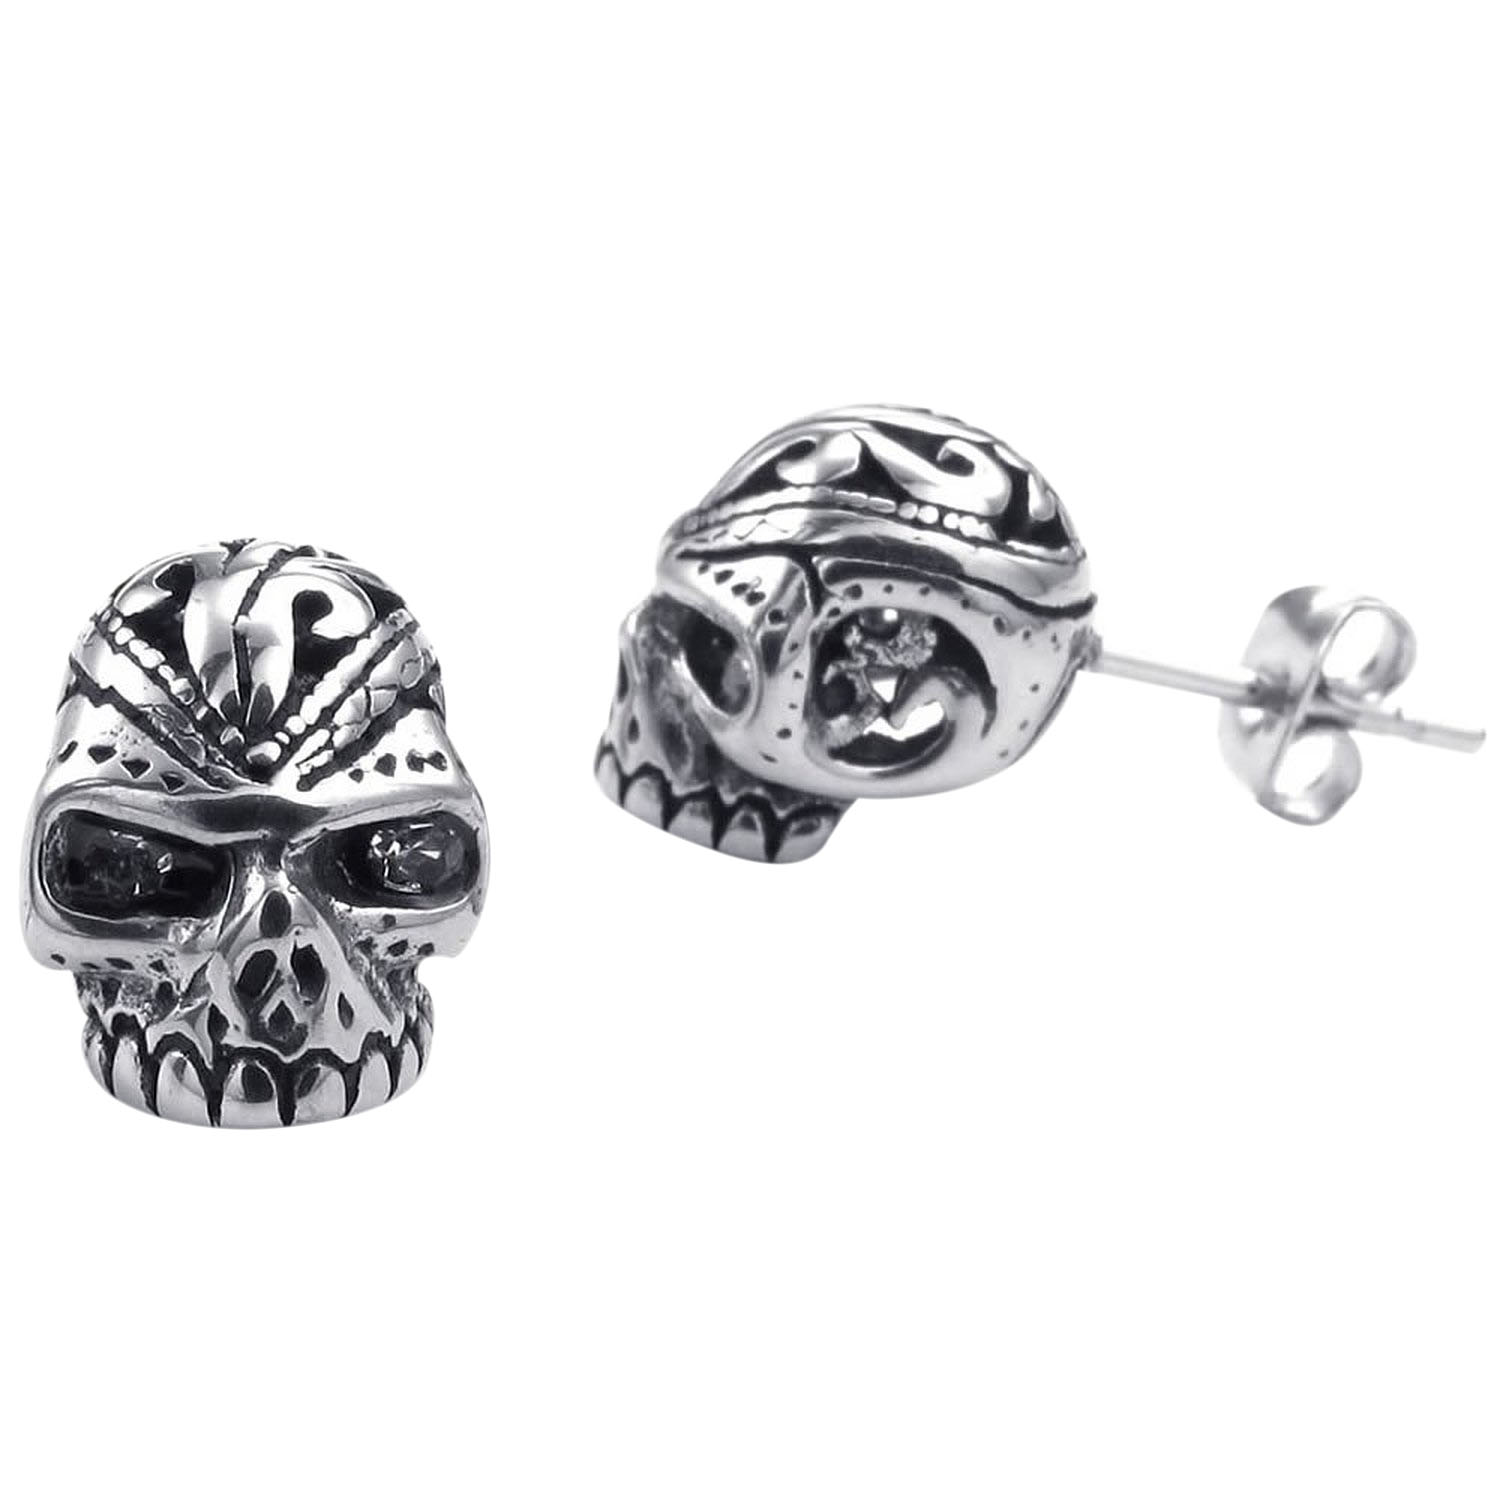 Velvet Bag Jewelry Mens Earrings, Gothic Skull Skull Stud, Zirconia Stainless Steel, black Silver